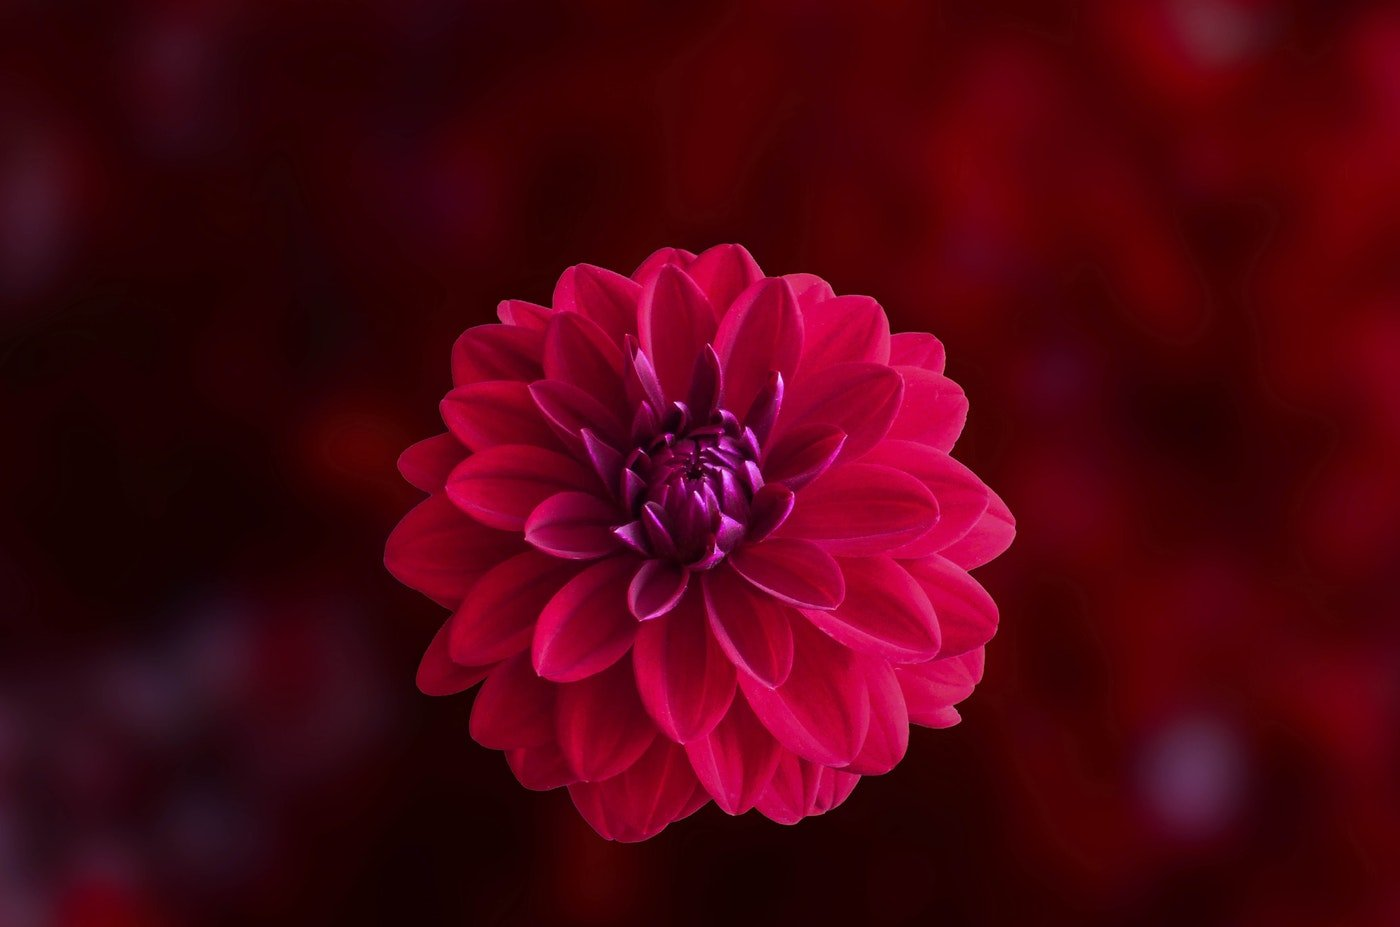 close-up of red dahlia - we reminisce about summer flowers